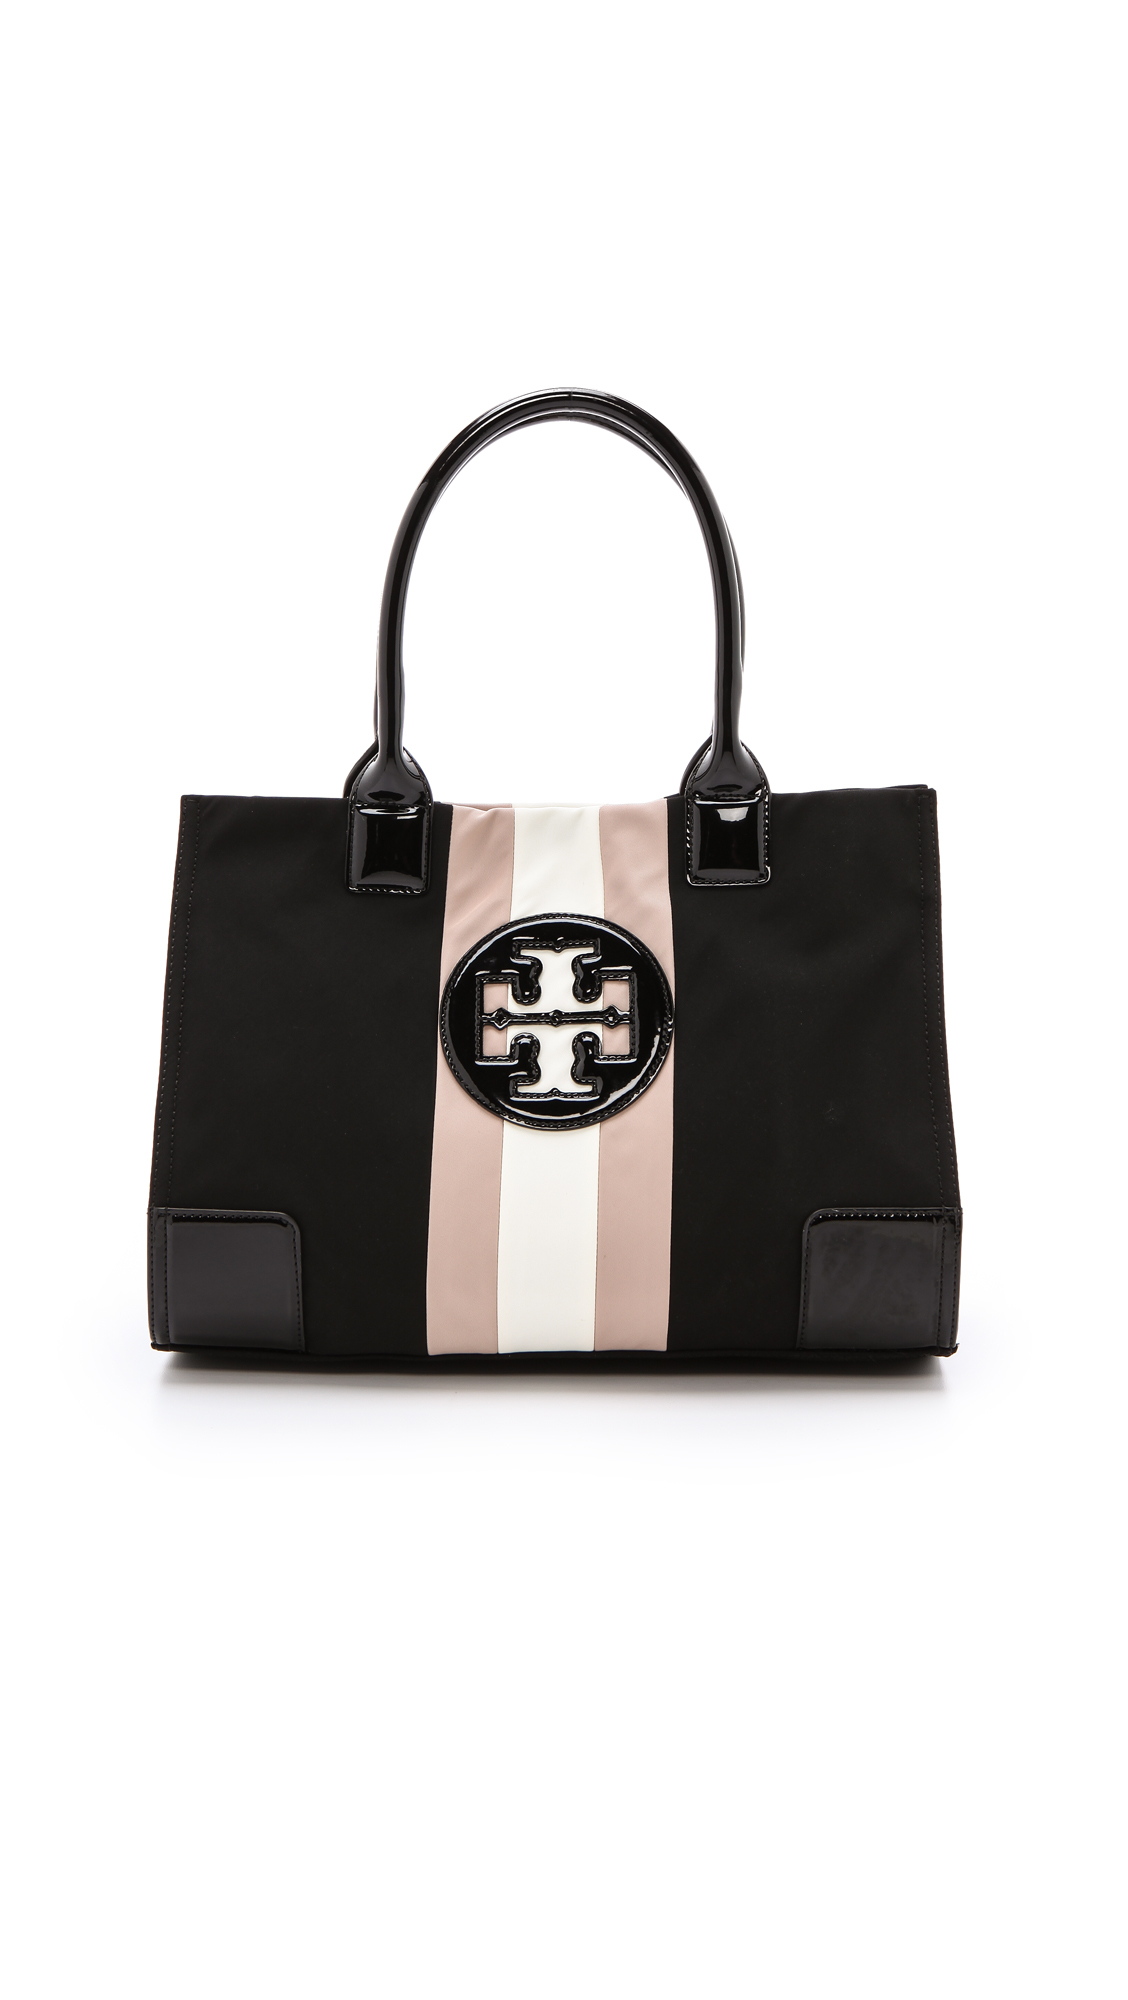 15a45a7d797 Lyst - Tory Burch Ella Mini Striped Tote Blackblushivory in Black